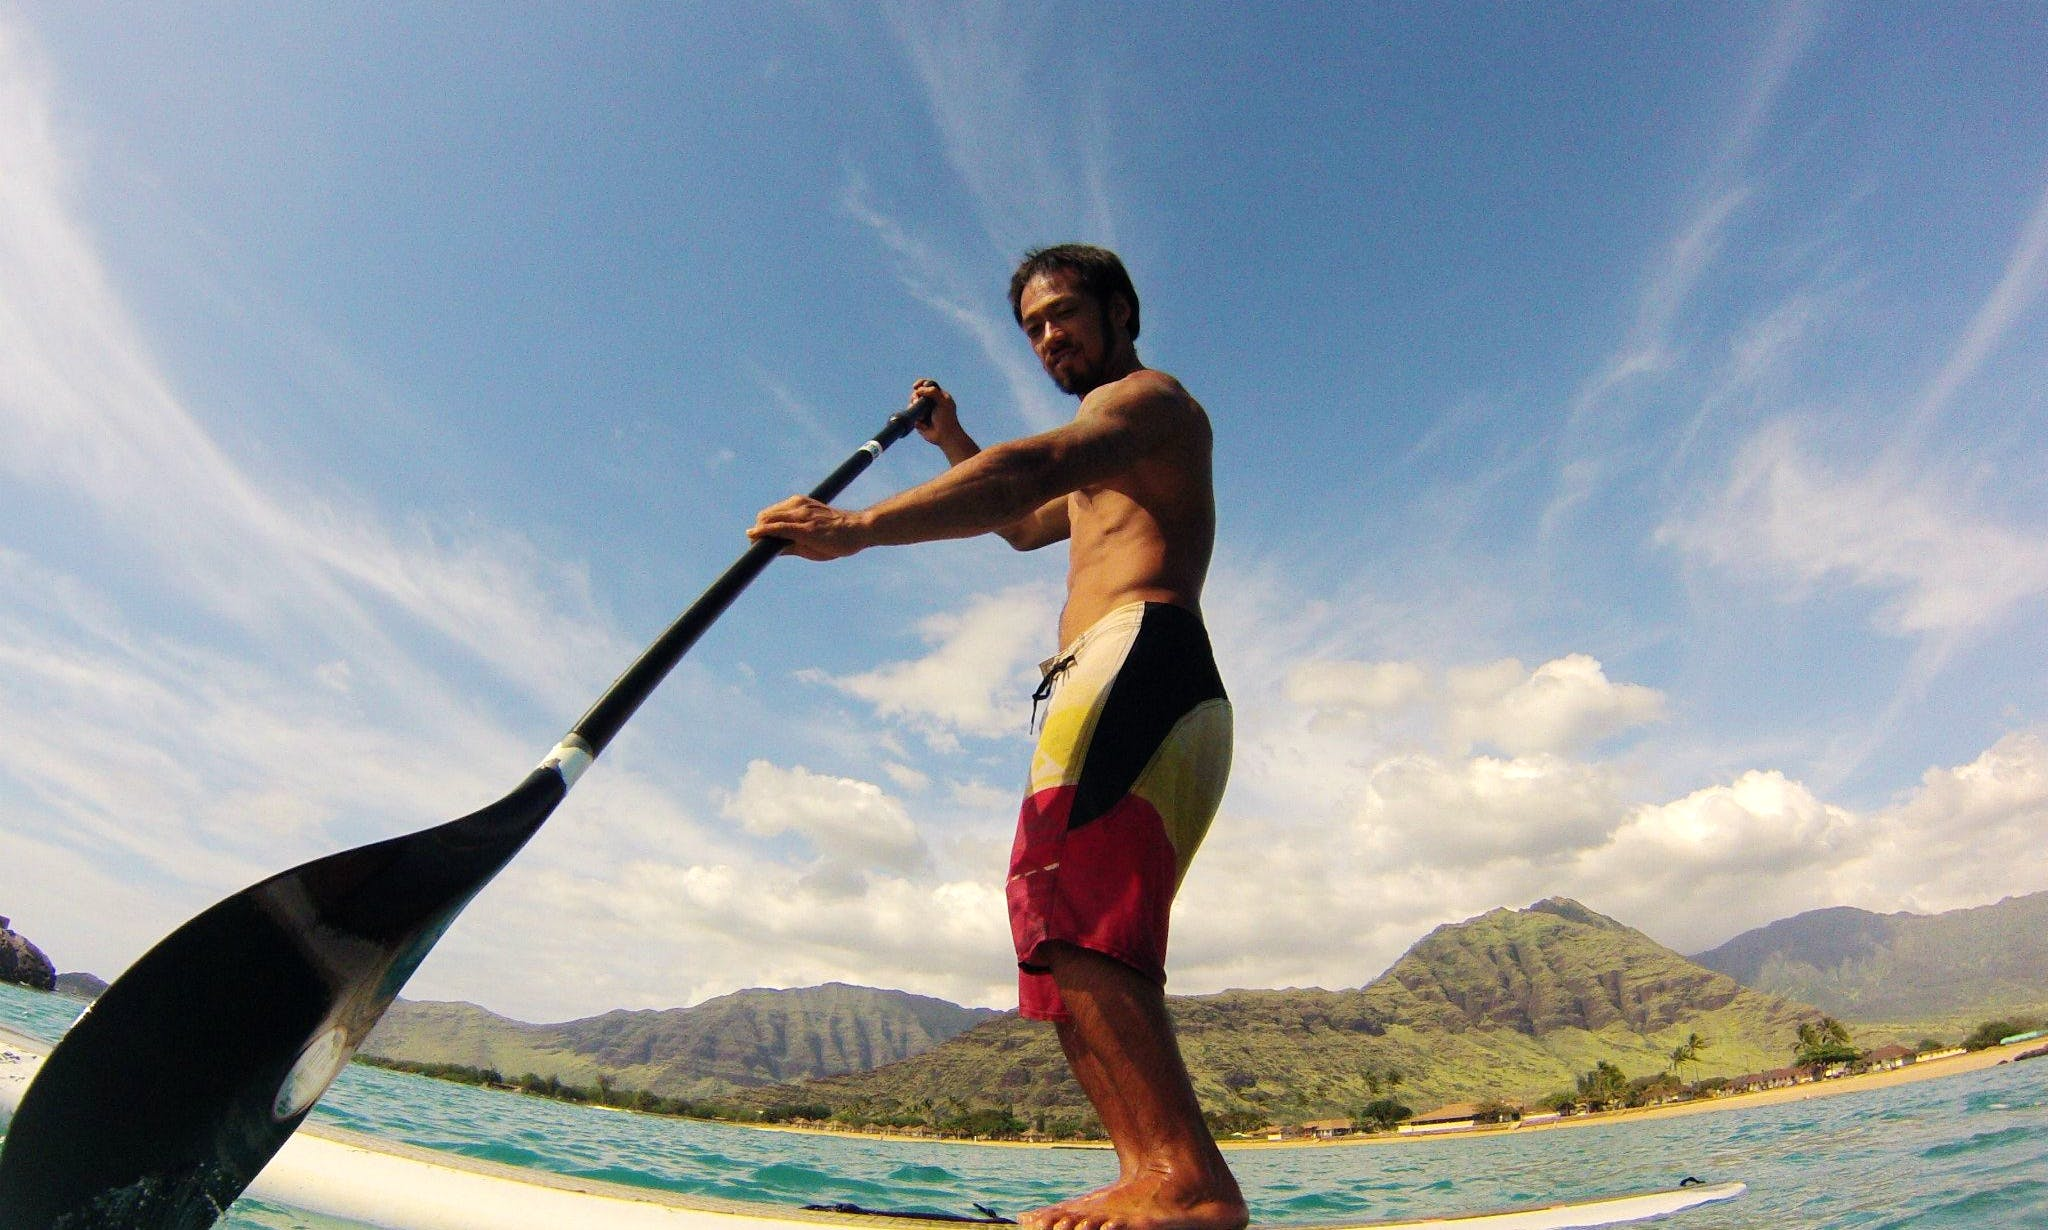 Full-day Stand-up Paddleboard Rental in Honolulu, Hawaii